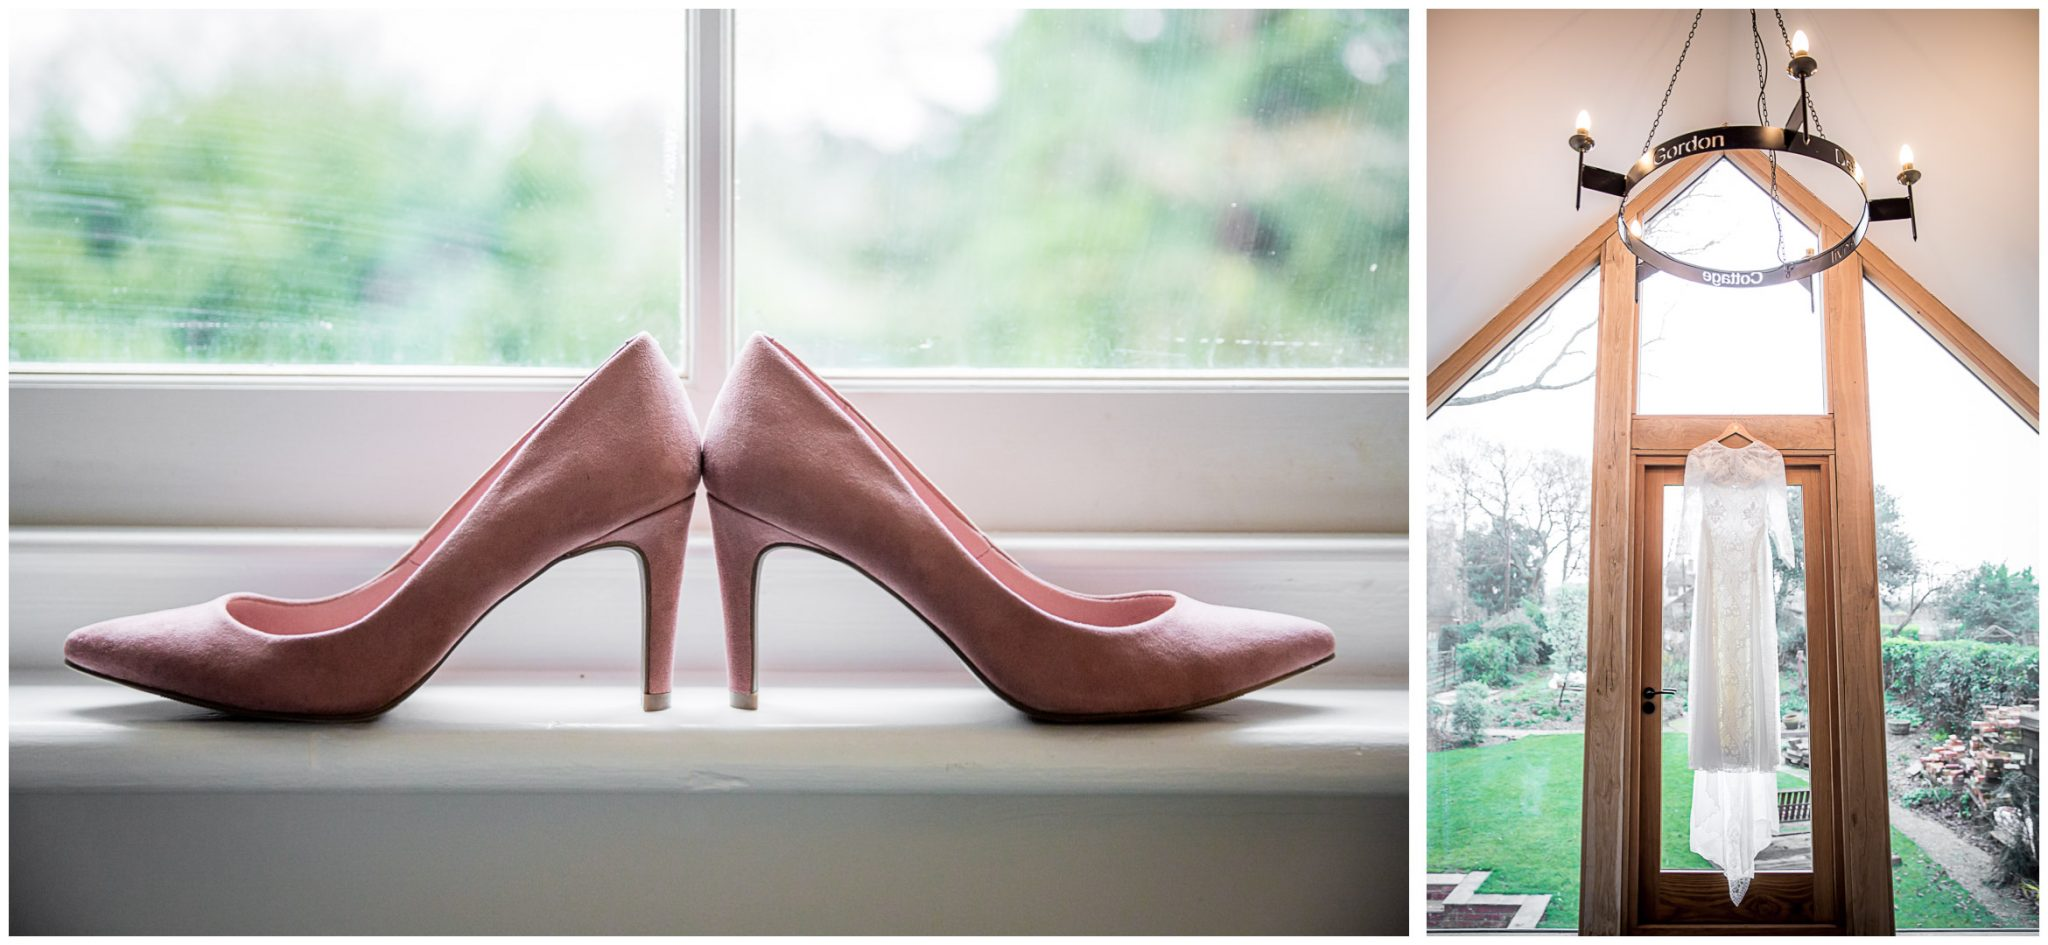 Dress hanging and wedding shoes for bridal preparation at home